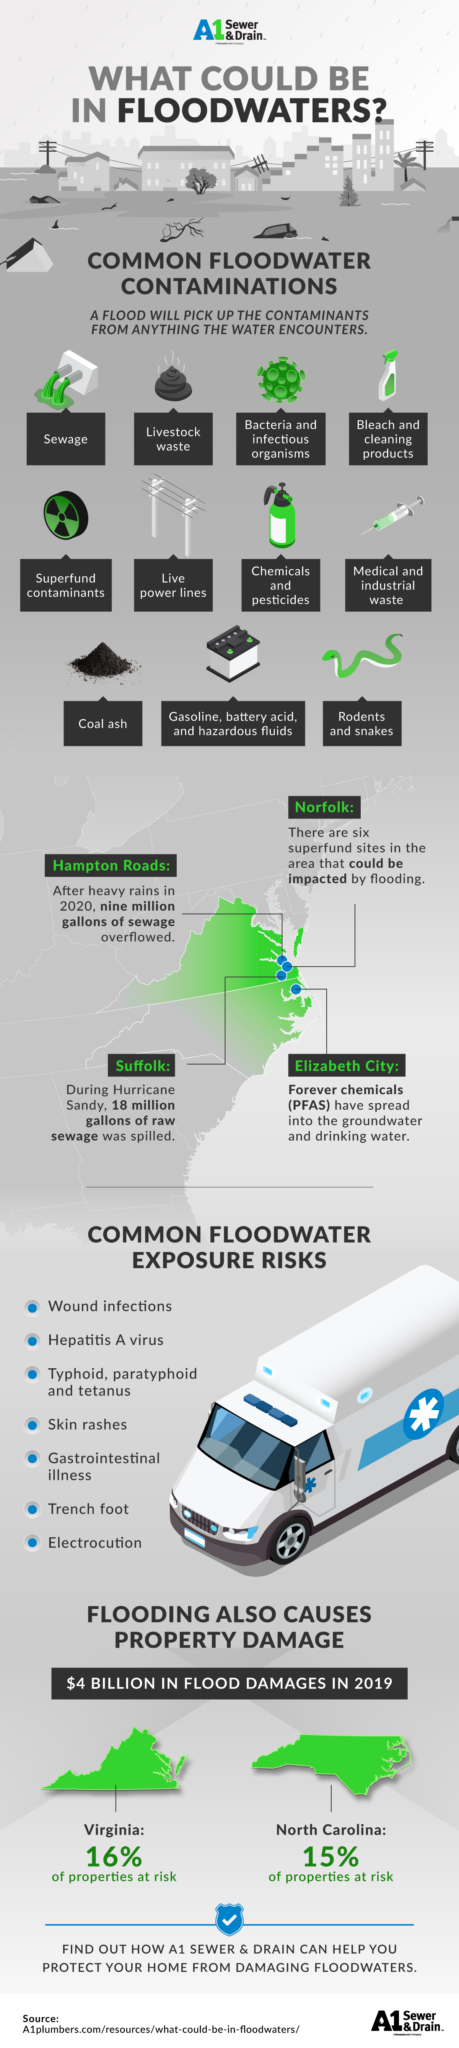 what could be in floodwaters